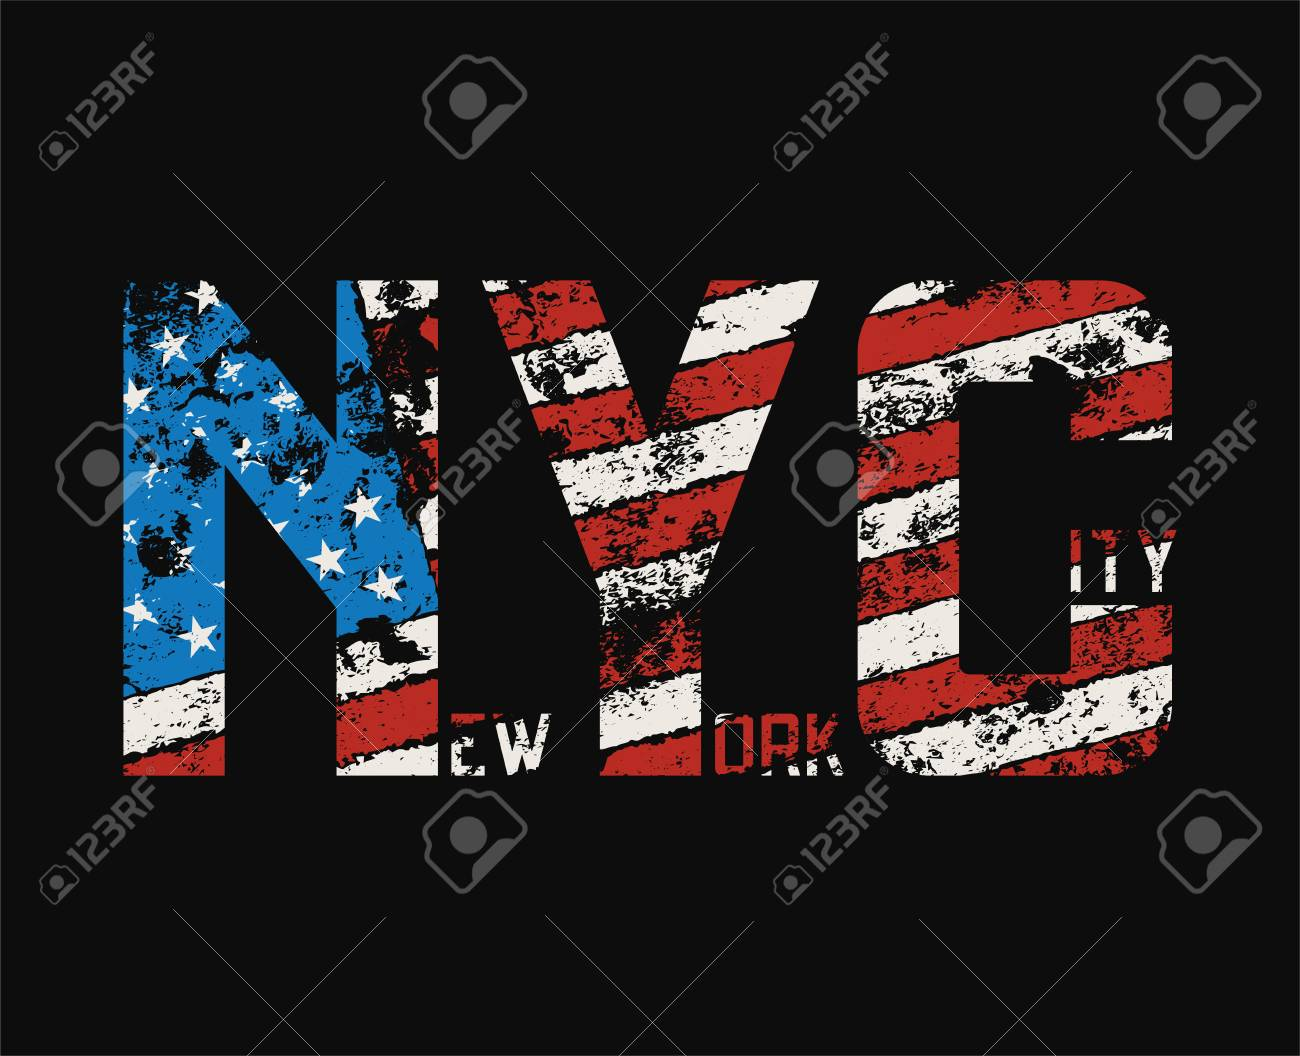 New York City t-shirt and apparel design with grunge effect. - 90027497